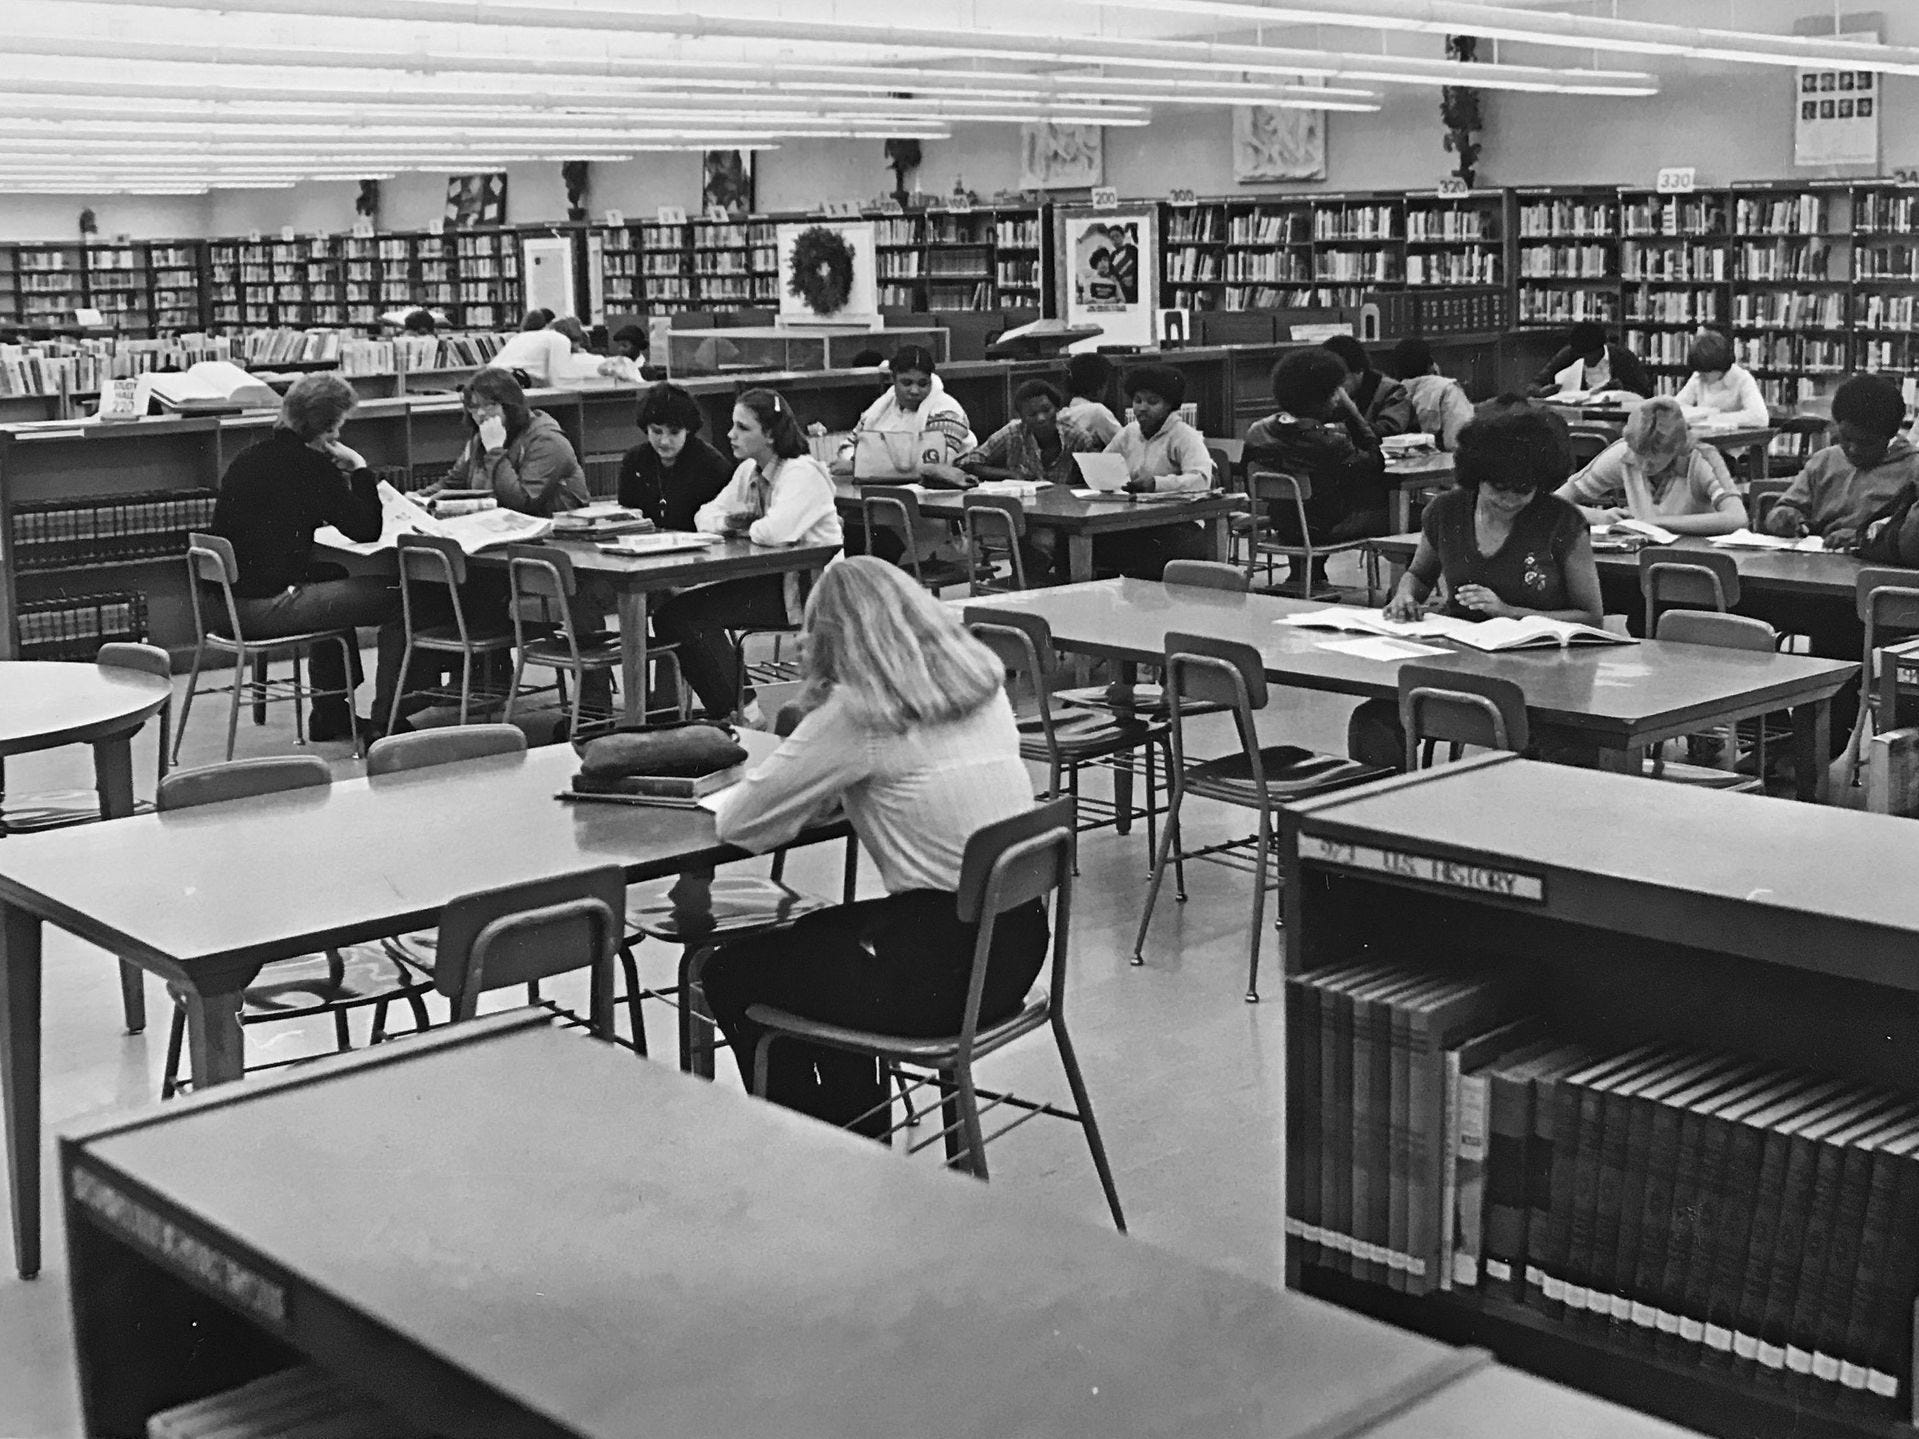 Students in the Northwest High School library in 1981.